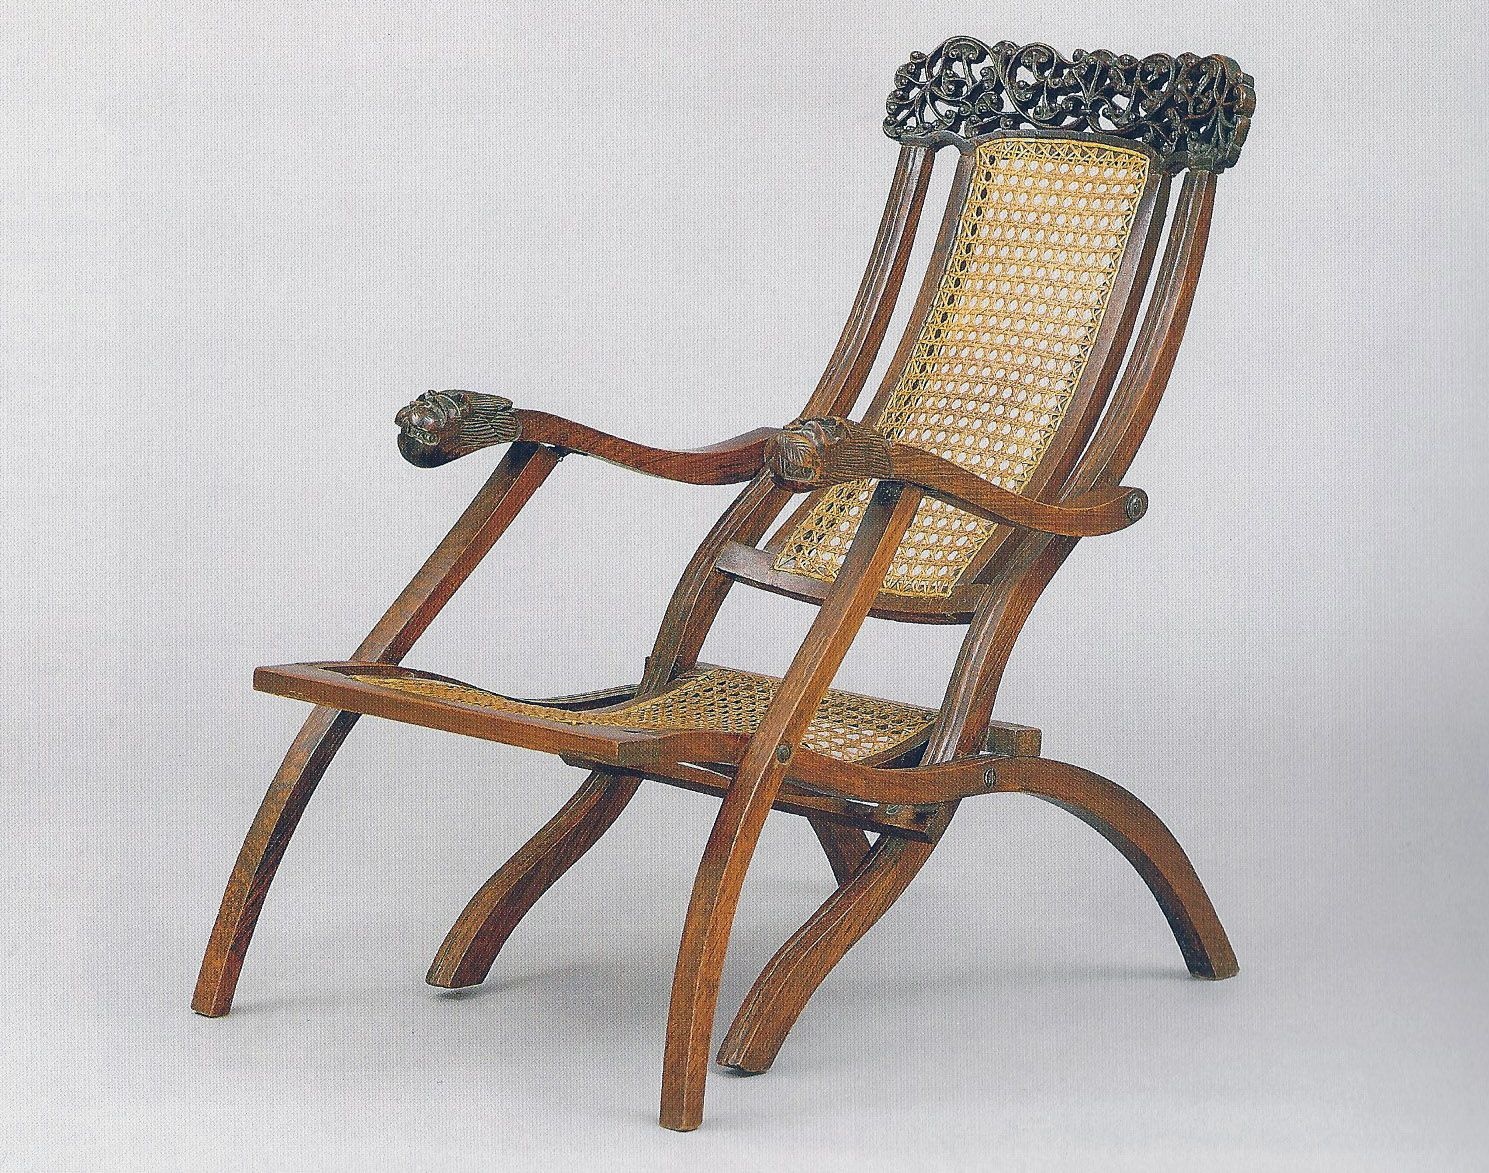 Folding Chair India Transfer Bath Chairs For Disabled Deck Anglo Raj Antiques Amin Jaffer